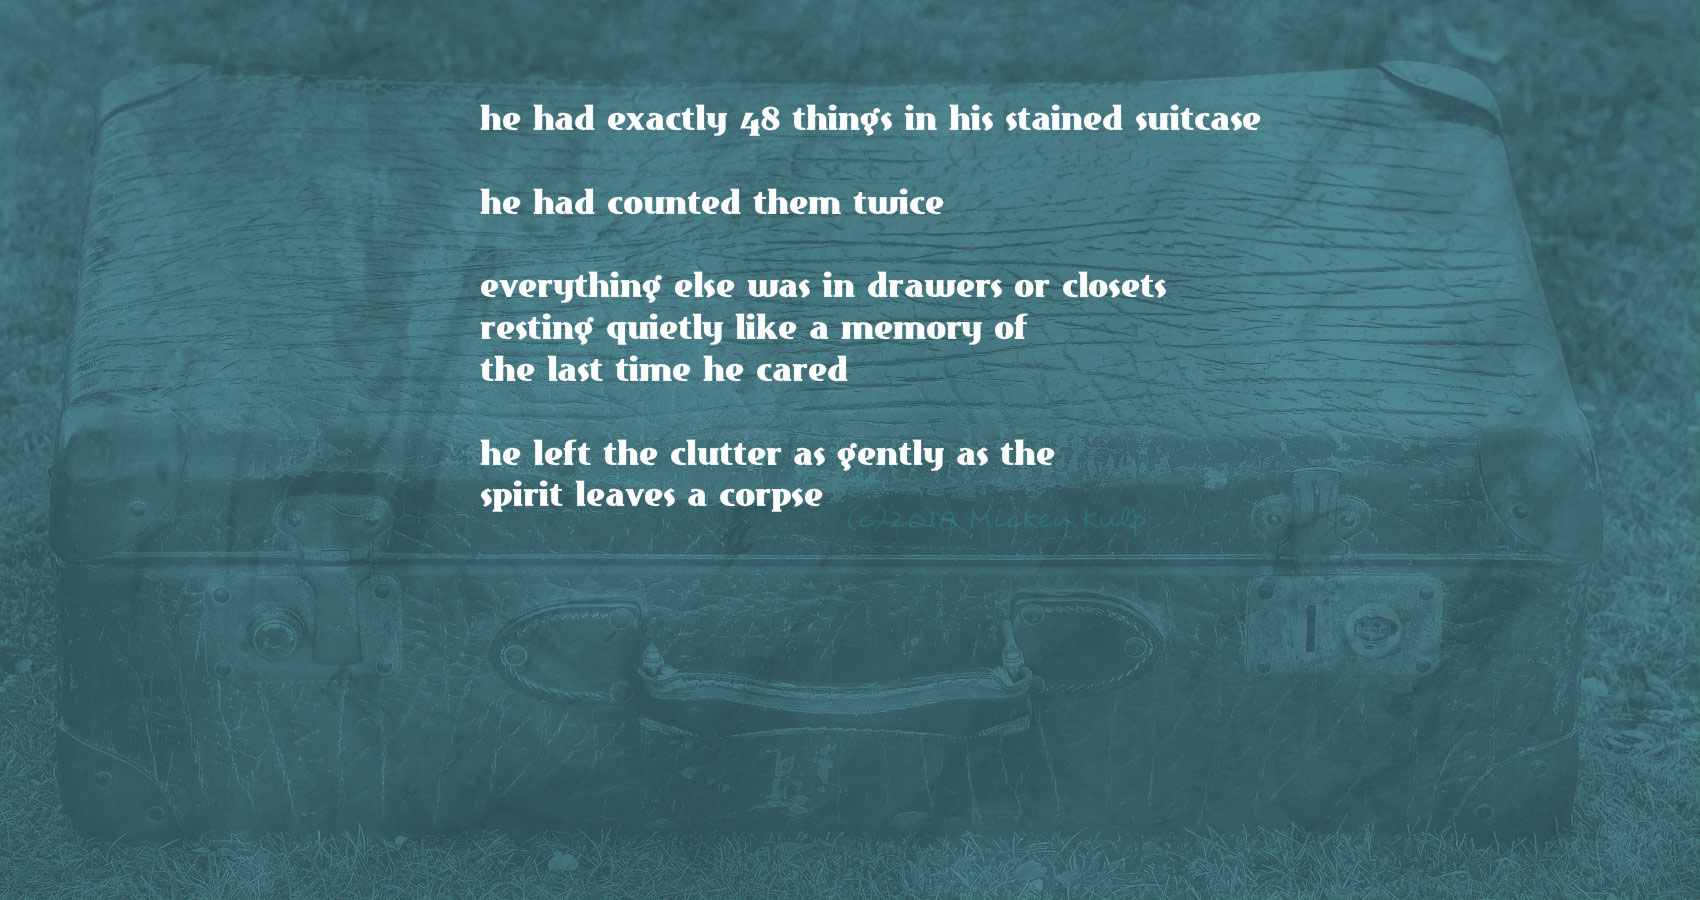 Clutter, a poem written by Mickey Kulp at Spillwords.com